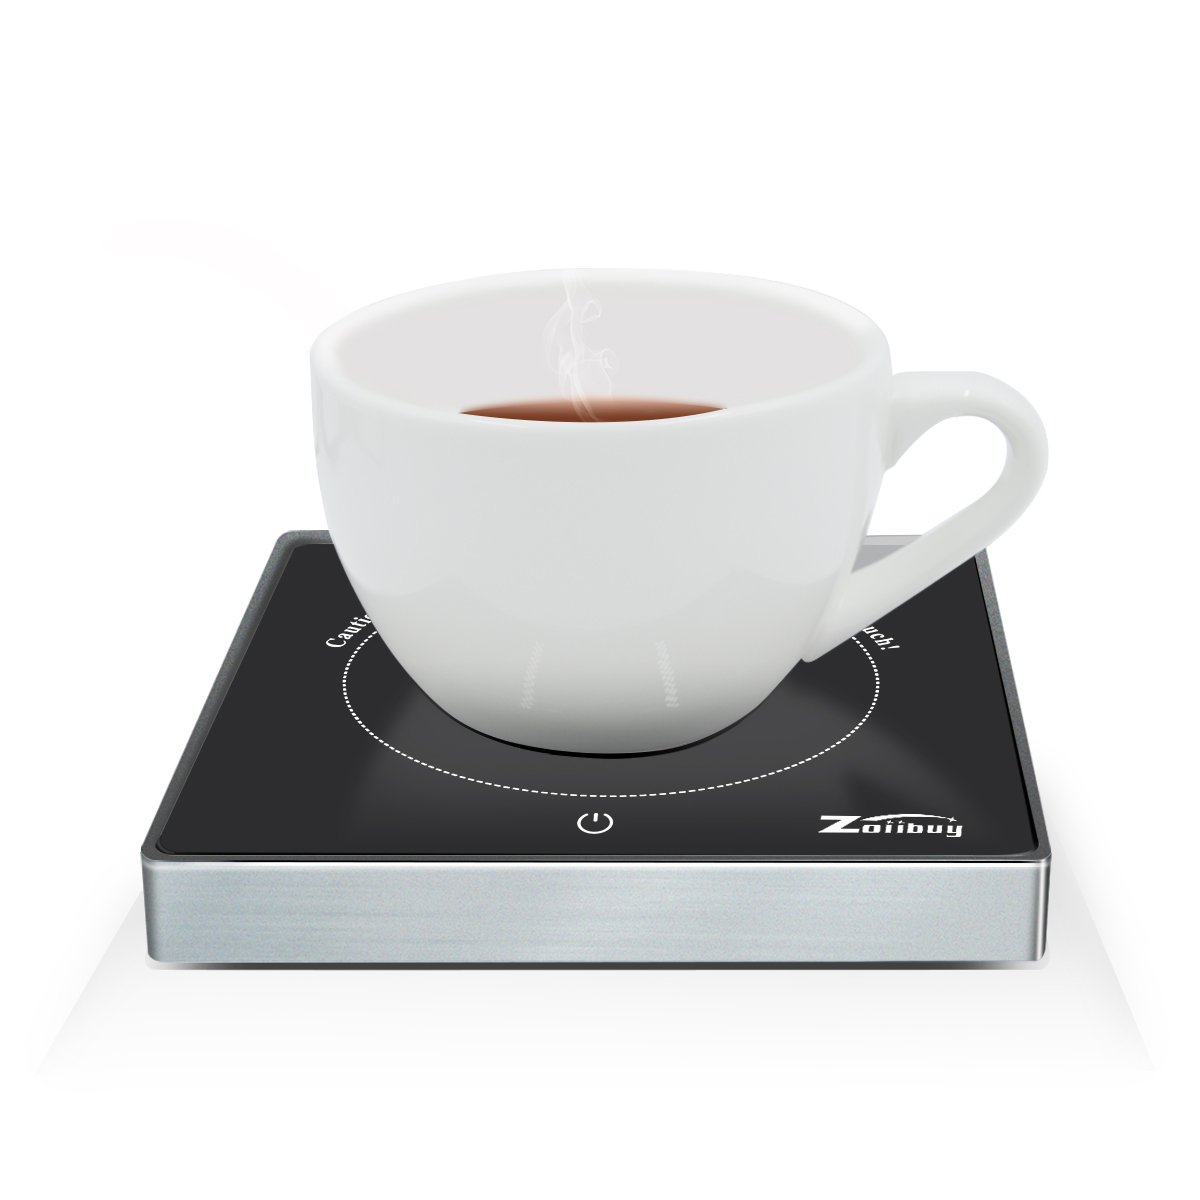 Zoiibuy Mug Cup Warmer(Coffee,Tea,Milk), Electric Cup Beverage Warmer for Home & Office Use, Heater Surface Warmer to 131℉ (1.4M Wire)